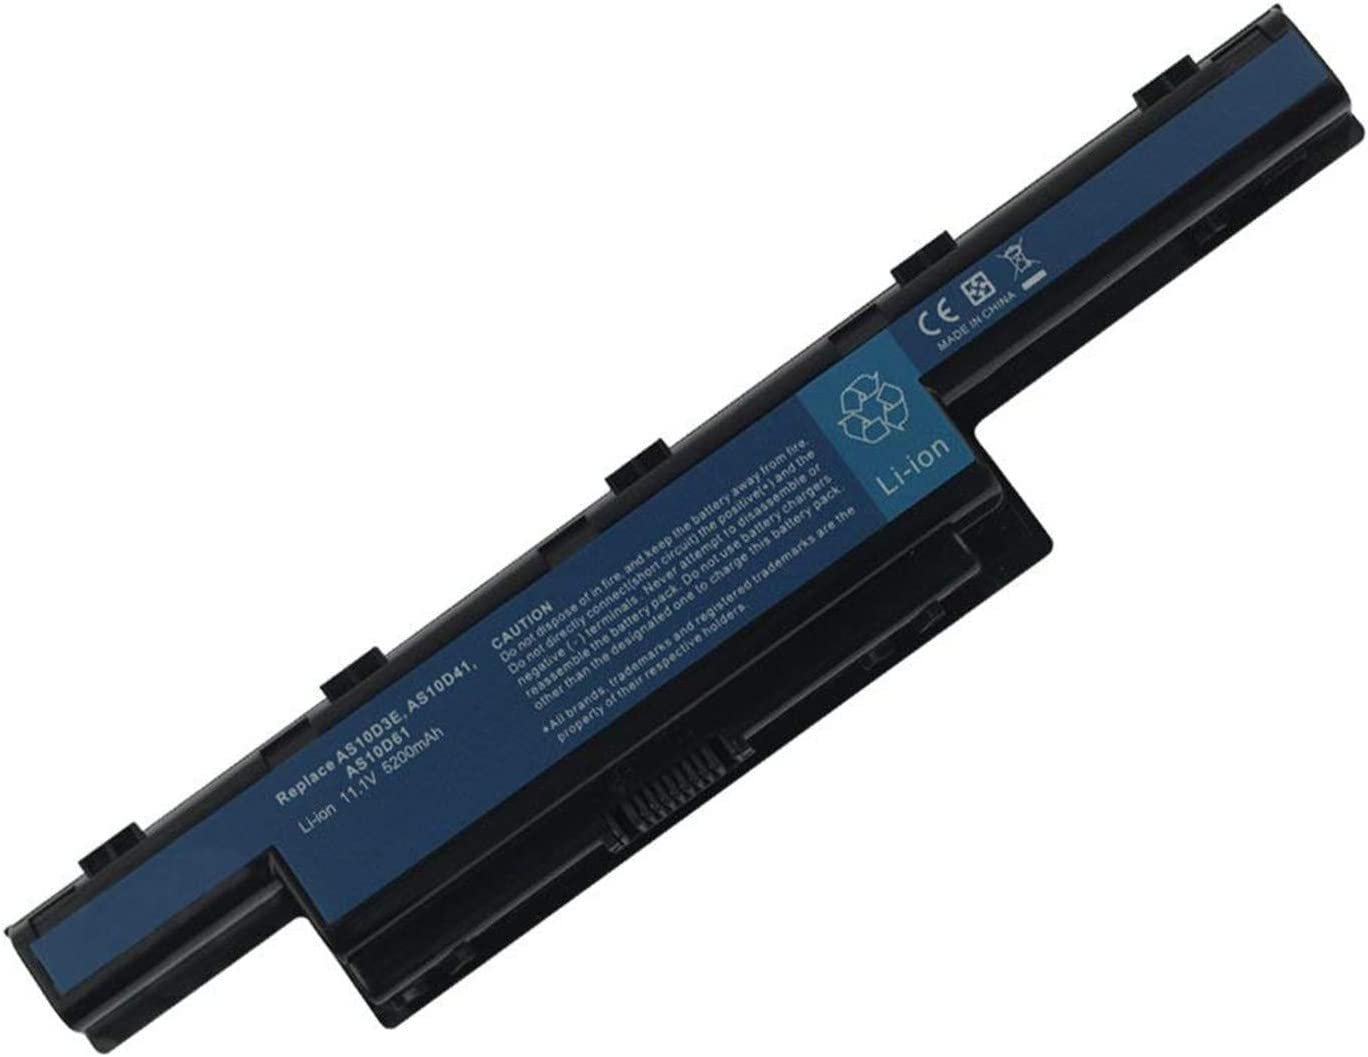 Batteria 5200mAh AS10D31 per Acer Aspire 5749Z  5750  5750G  5750Z  5750ZG